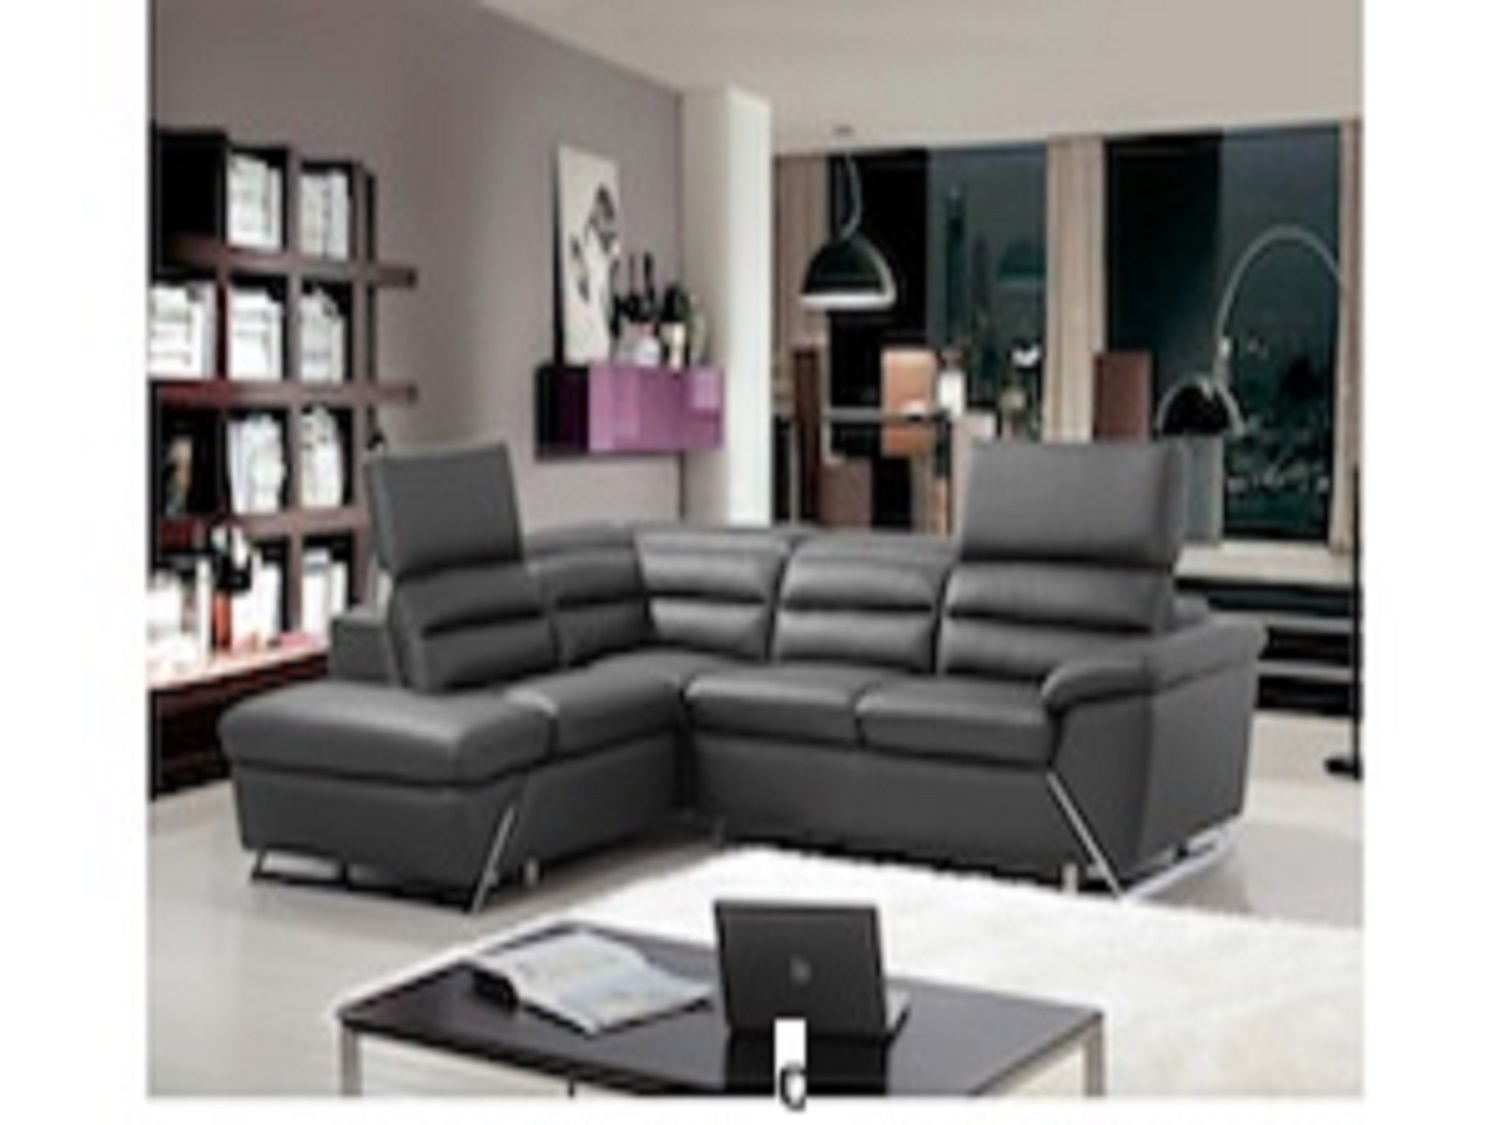 BONZA SECTIONAL (LHF) DARK GREY Living Rooms Modern, K125, Sofa Sets by Midha Furniture to Brampton, Mississauga, Etobicoke, Toronto, Scraborough, Caledon, Oakville, Markham, Ajax, Pickering, Oshawa, Richmondhill, Kitchener, Hamilton and GTA area